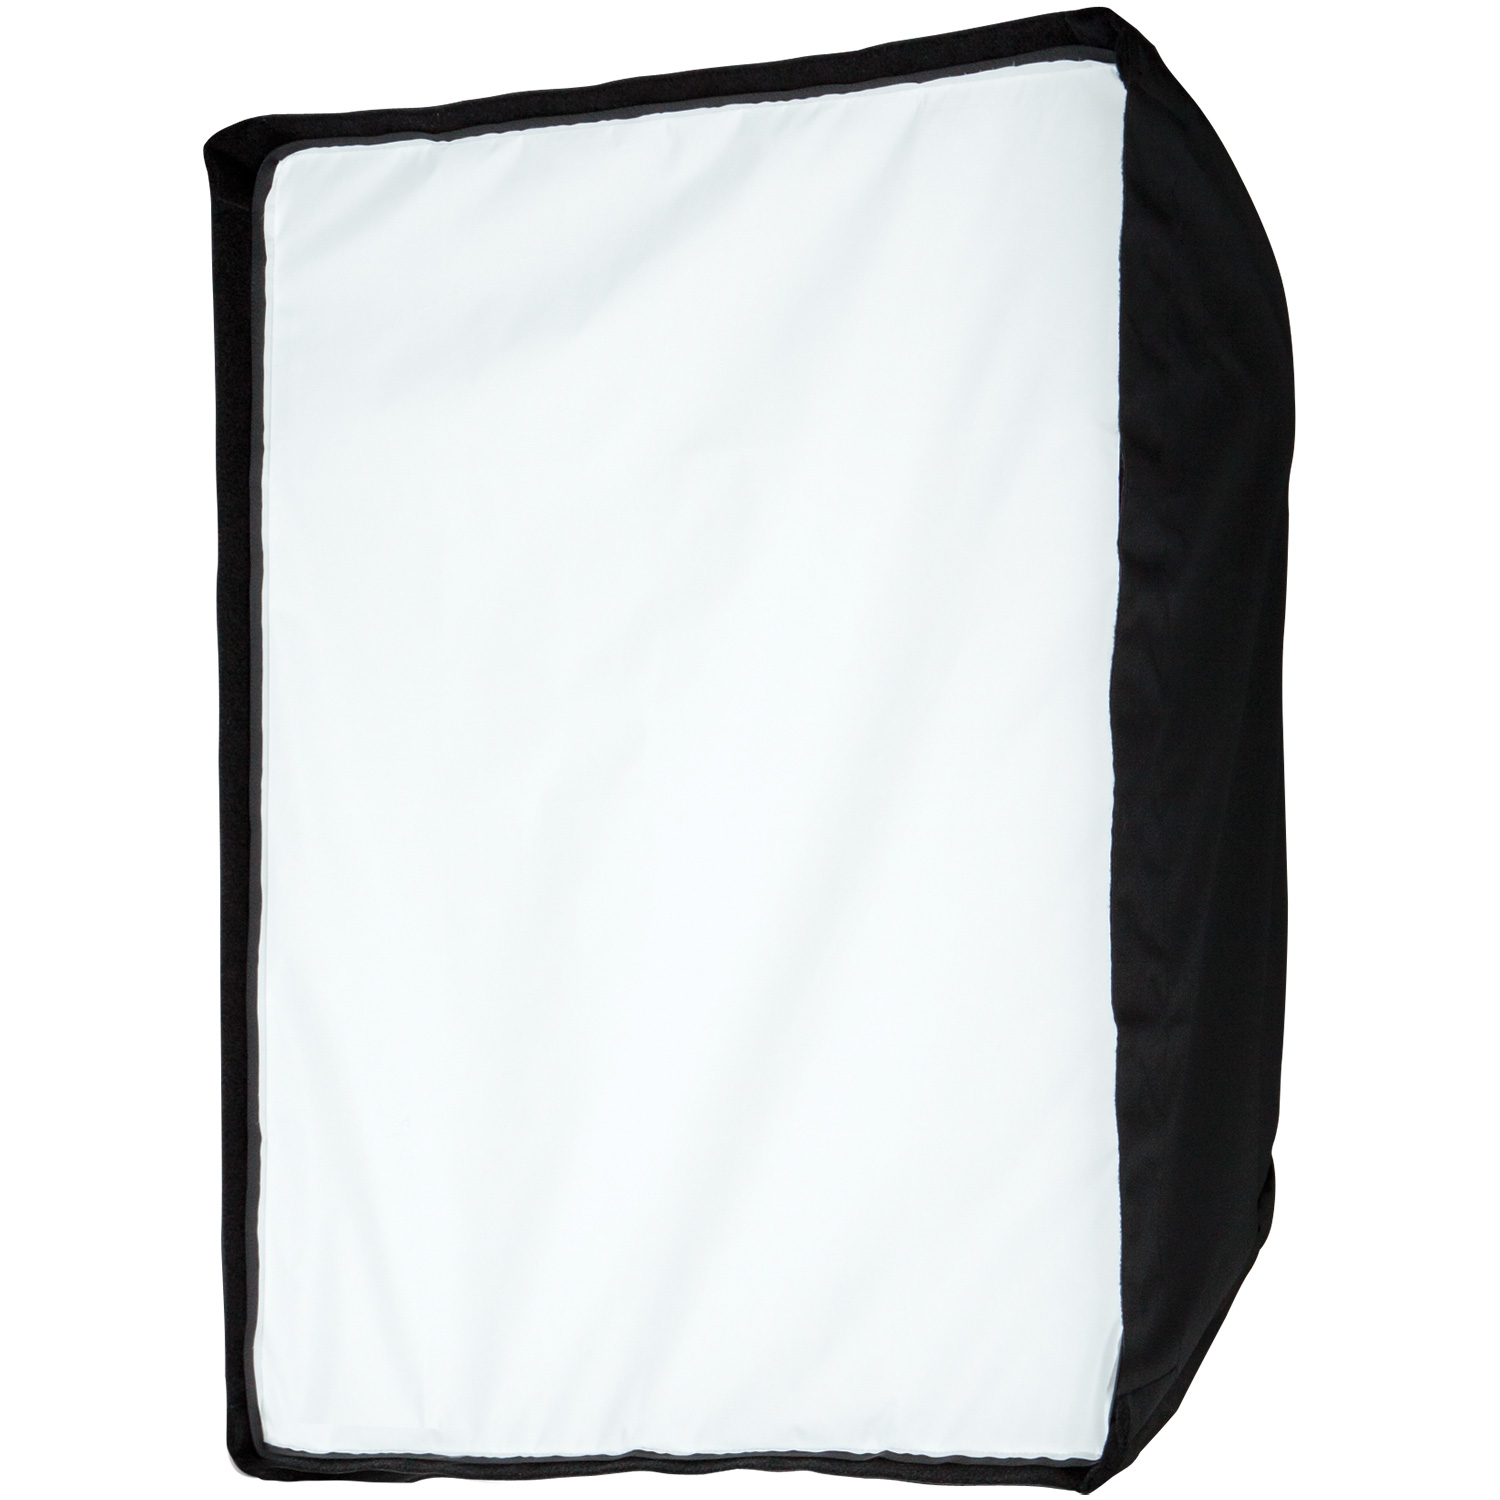 24-in. x 32-in. Pro Signature Softbox